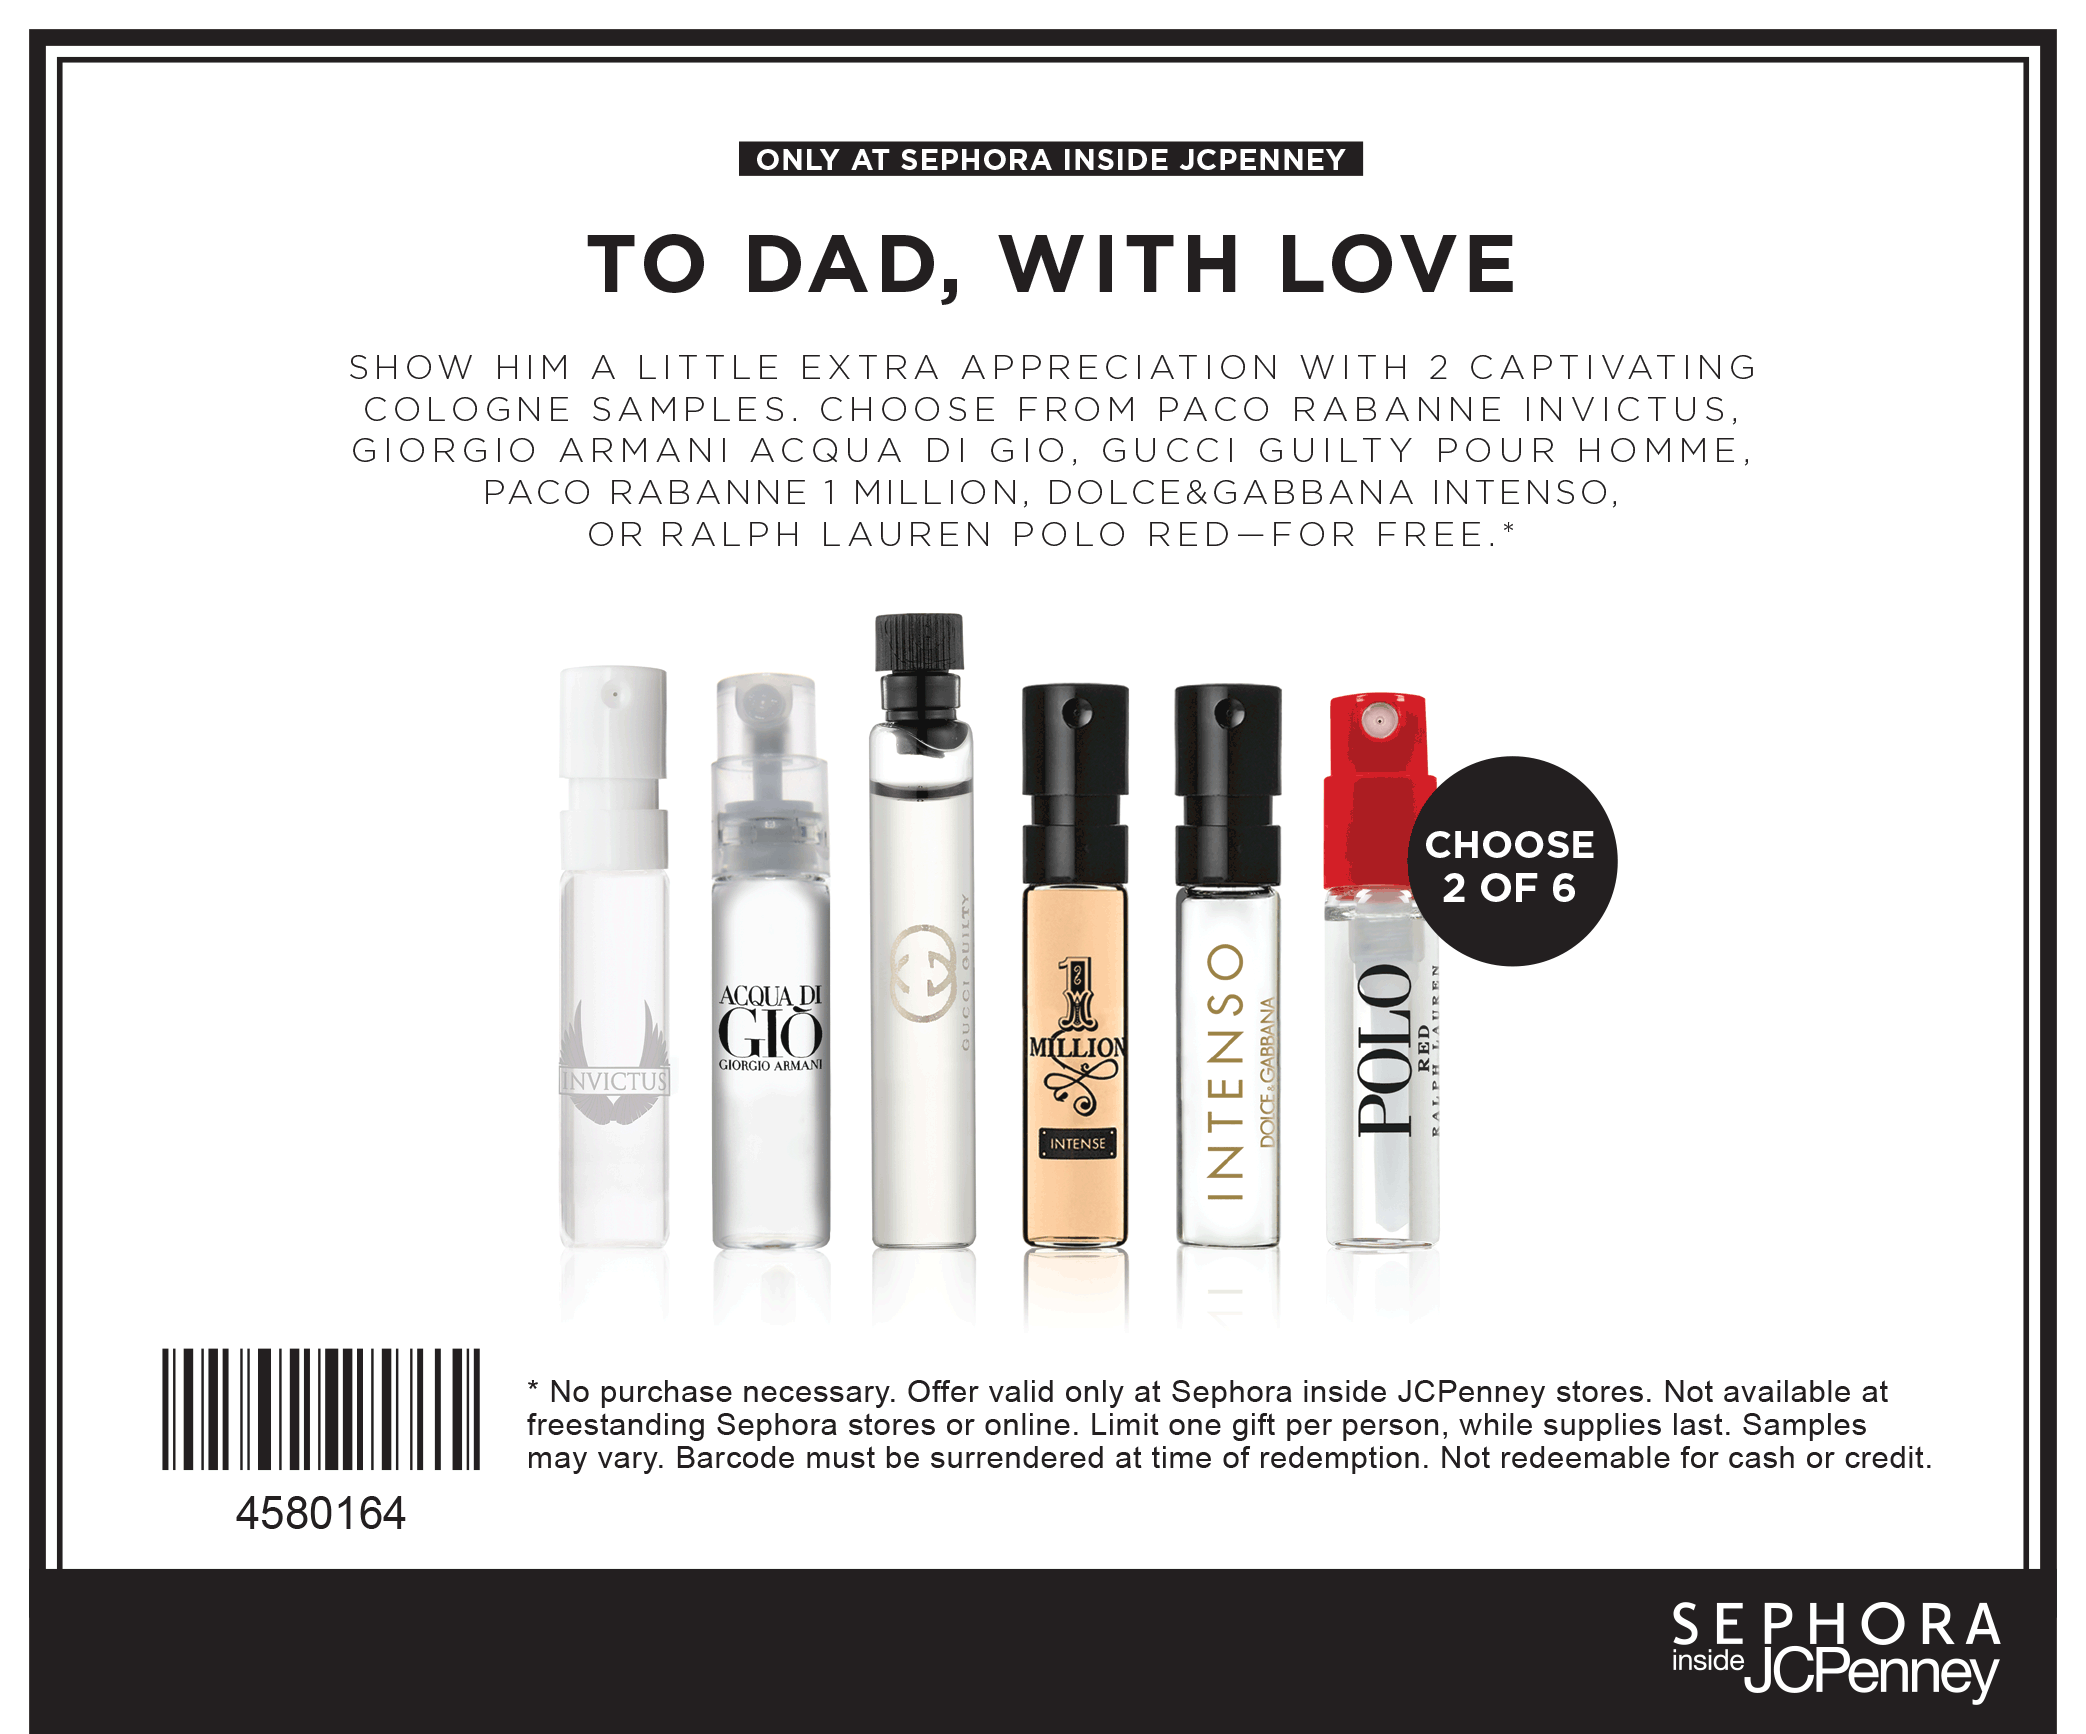 Free Sample: Couple Dolce Gabanna fragrance in-store at